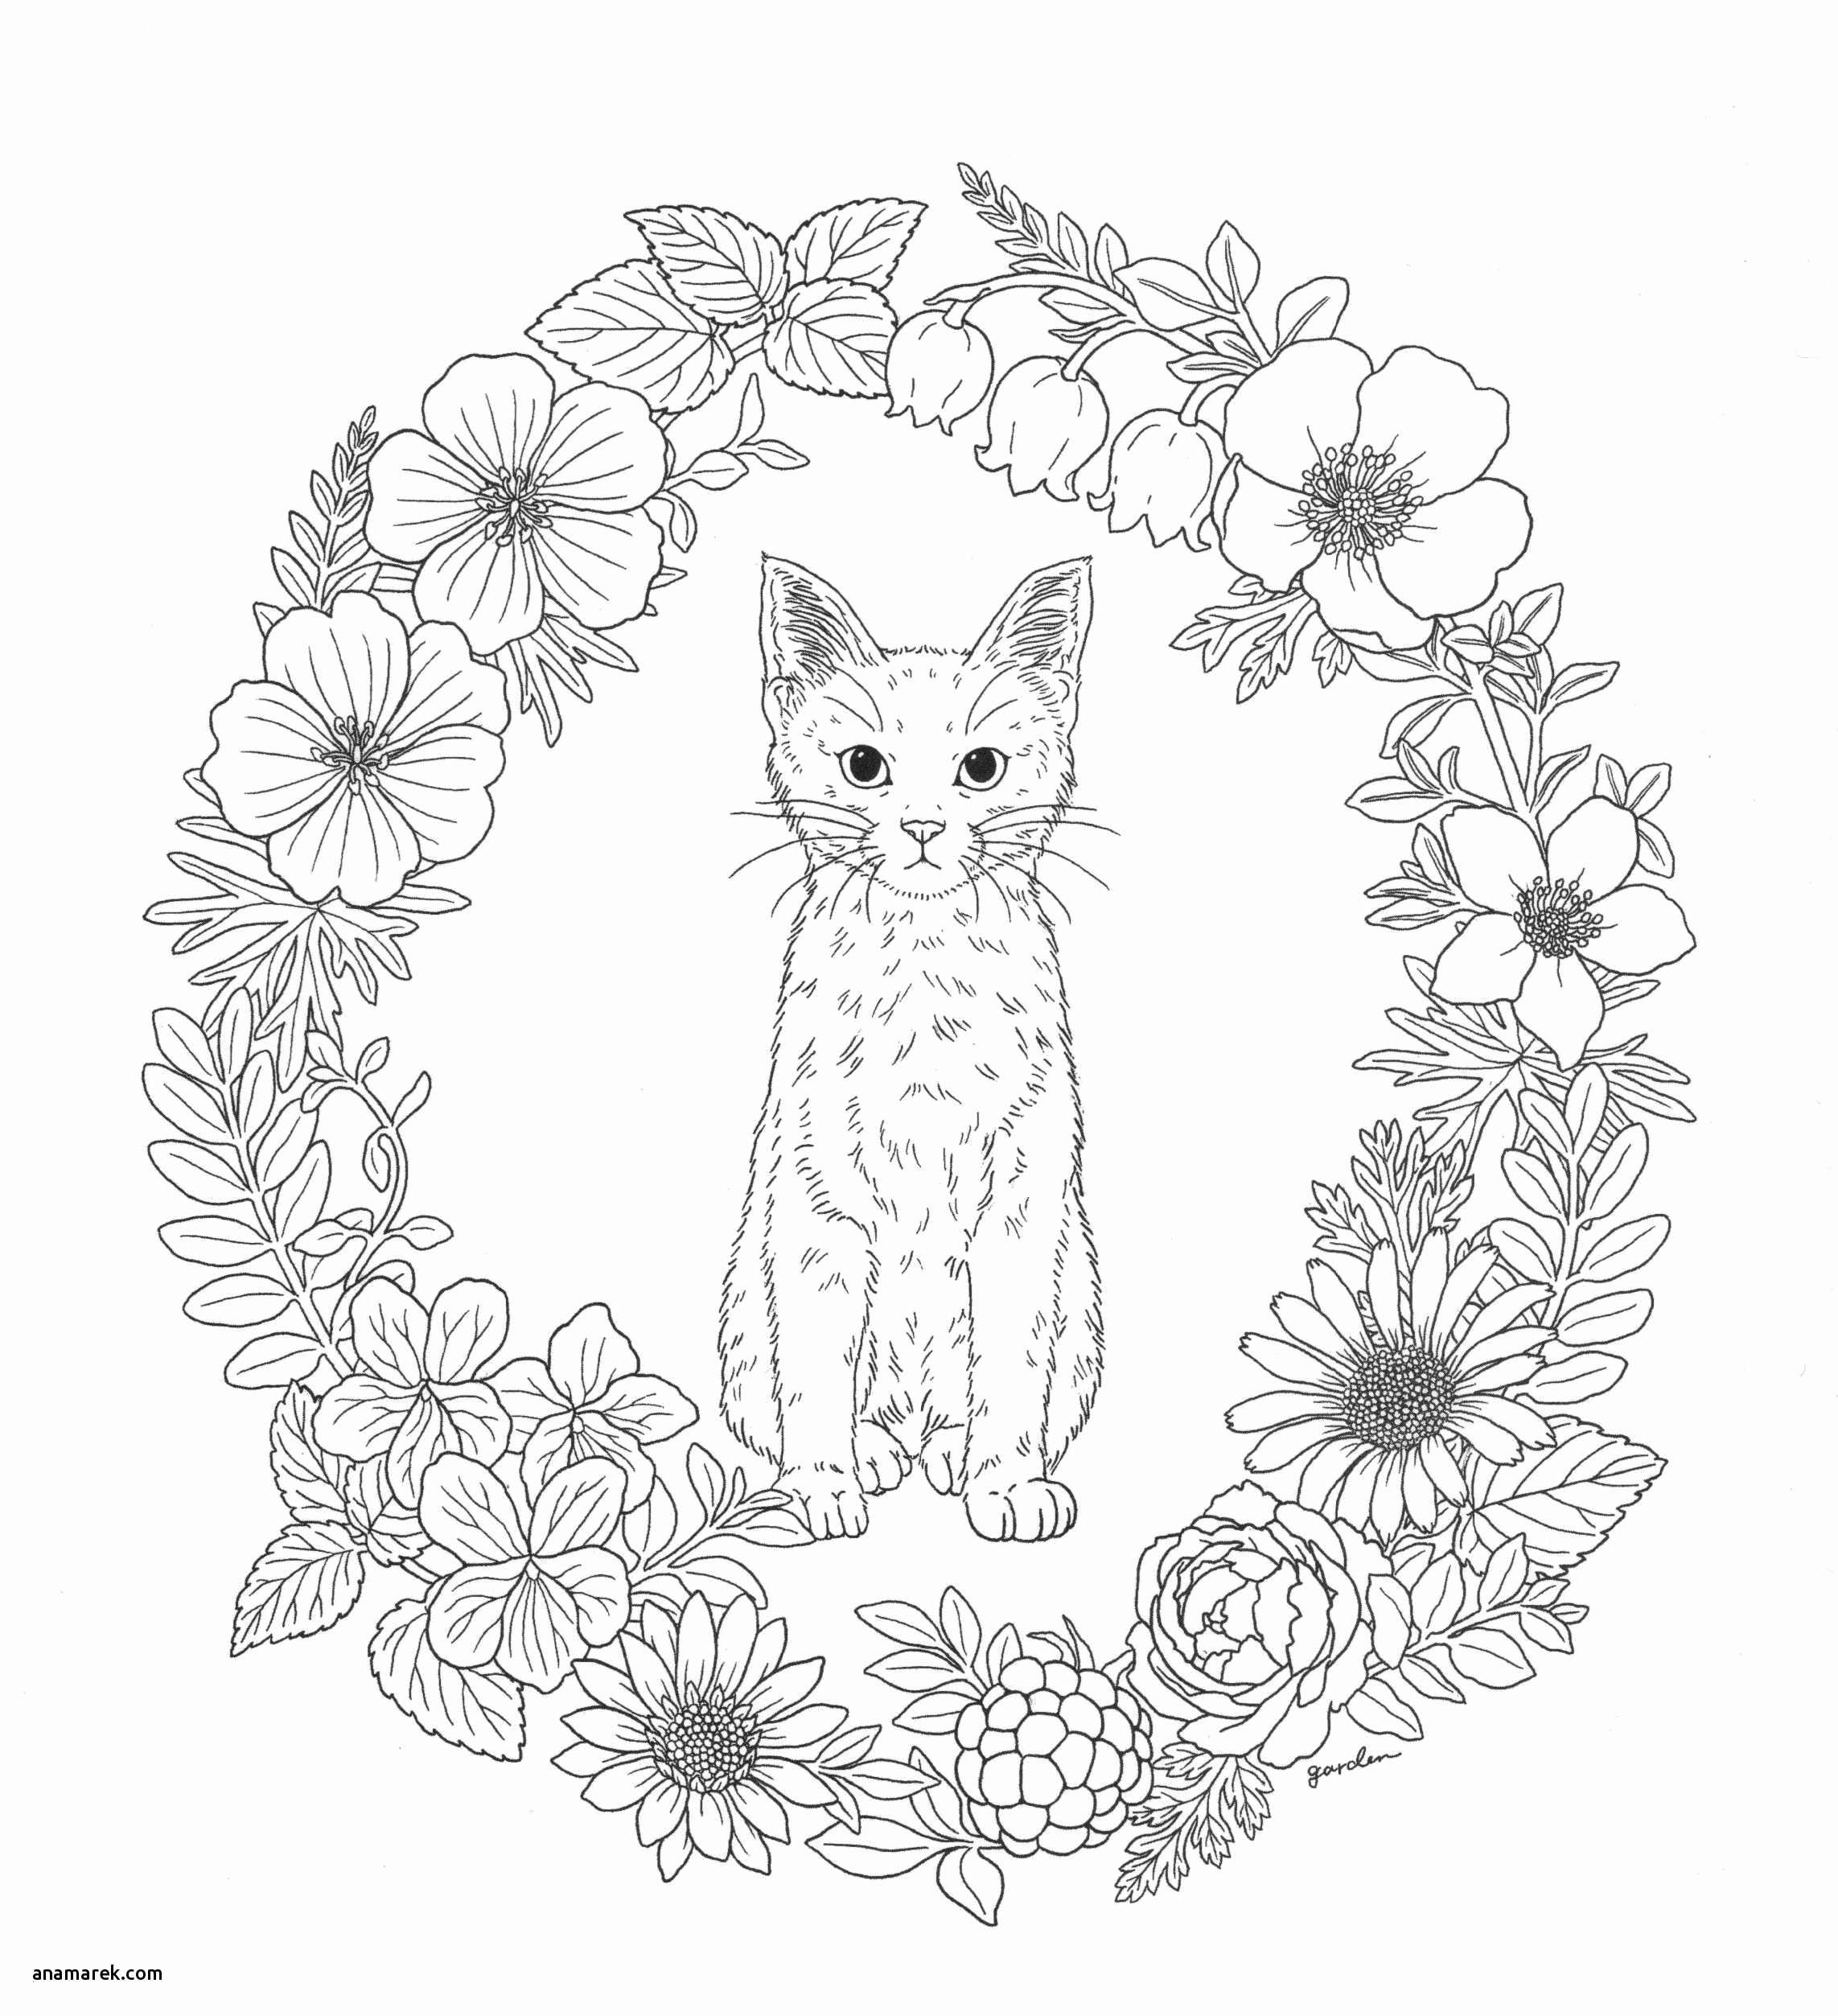 Difficult Christmas Coloring Pages For Adults With Plicated